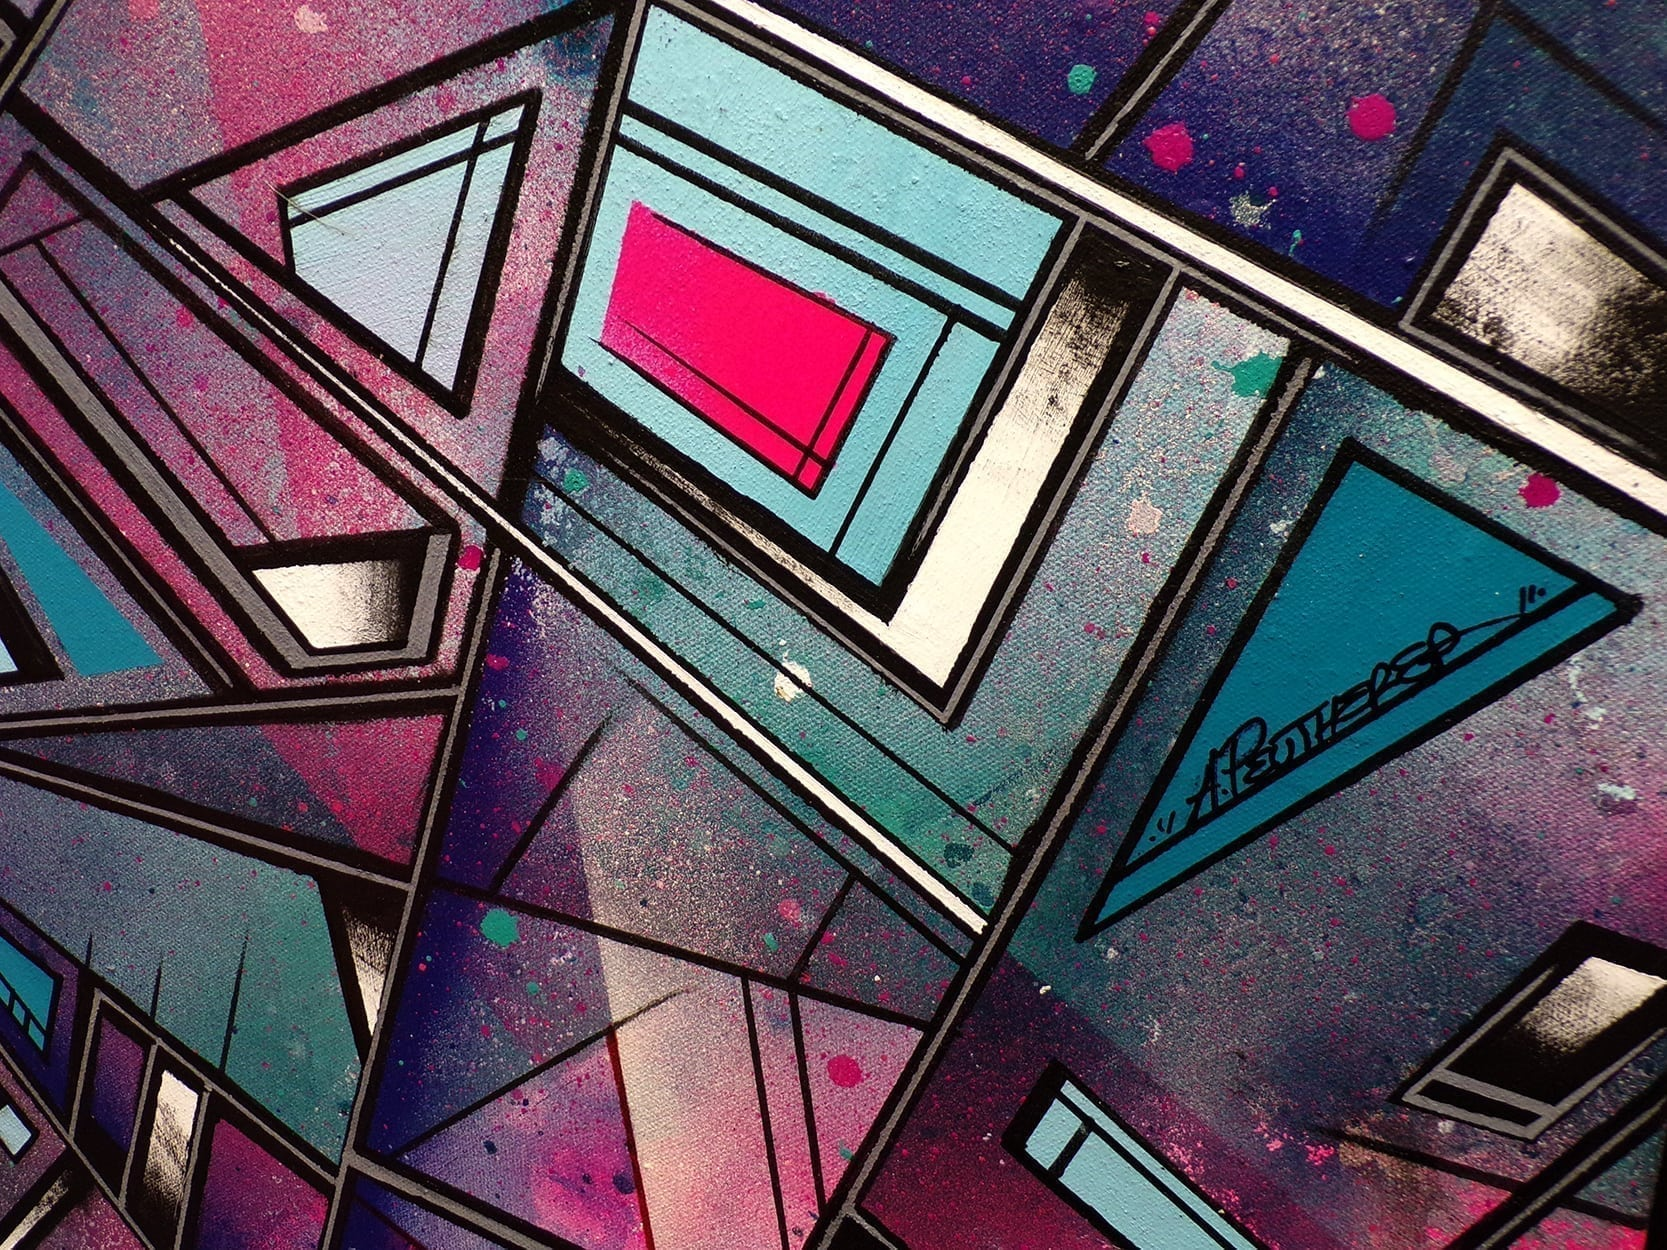 Streetskate 1 -An abstract geometric painting, detail image